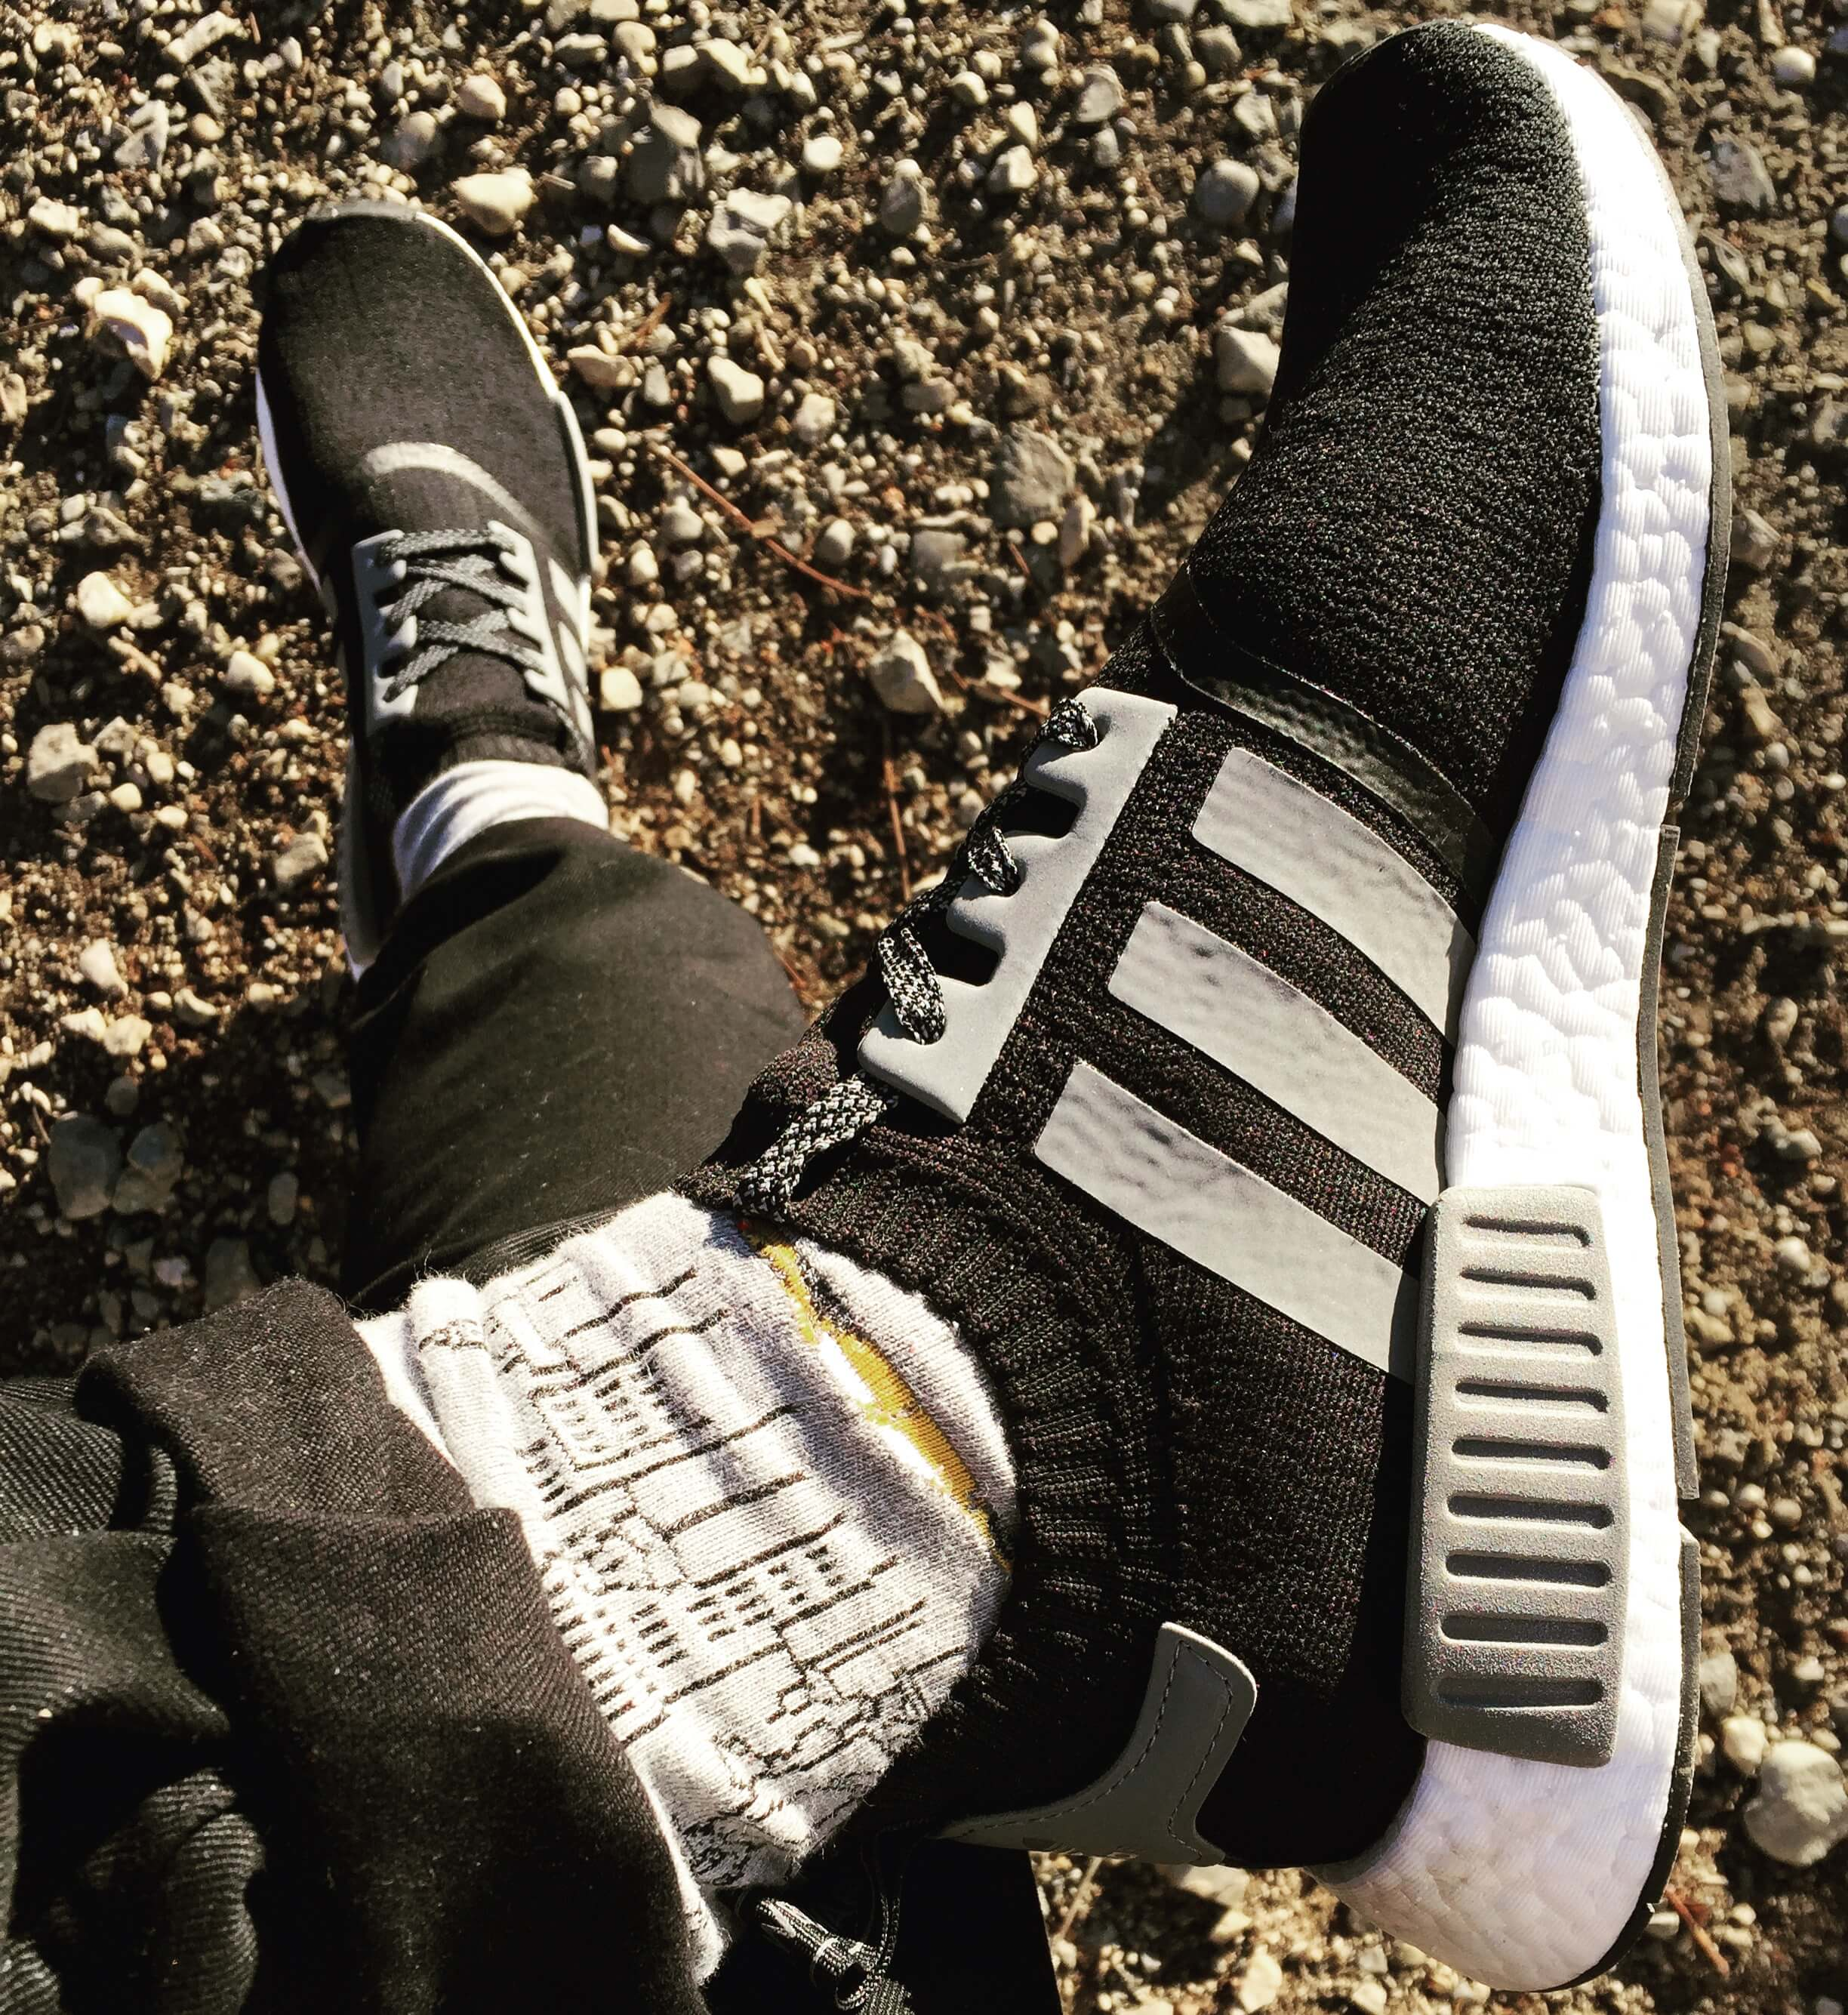 Adidas-NMD-Key-City-Activation-Top-View-Grey-Socks